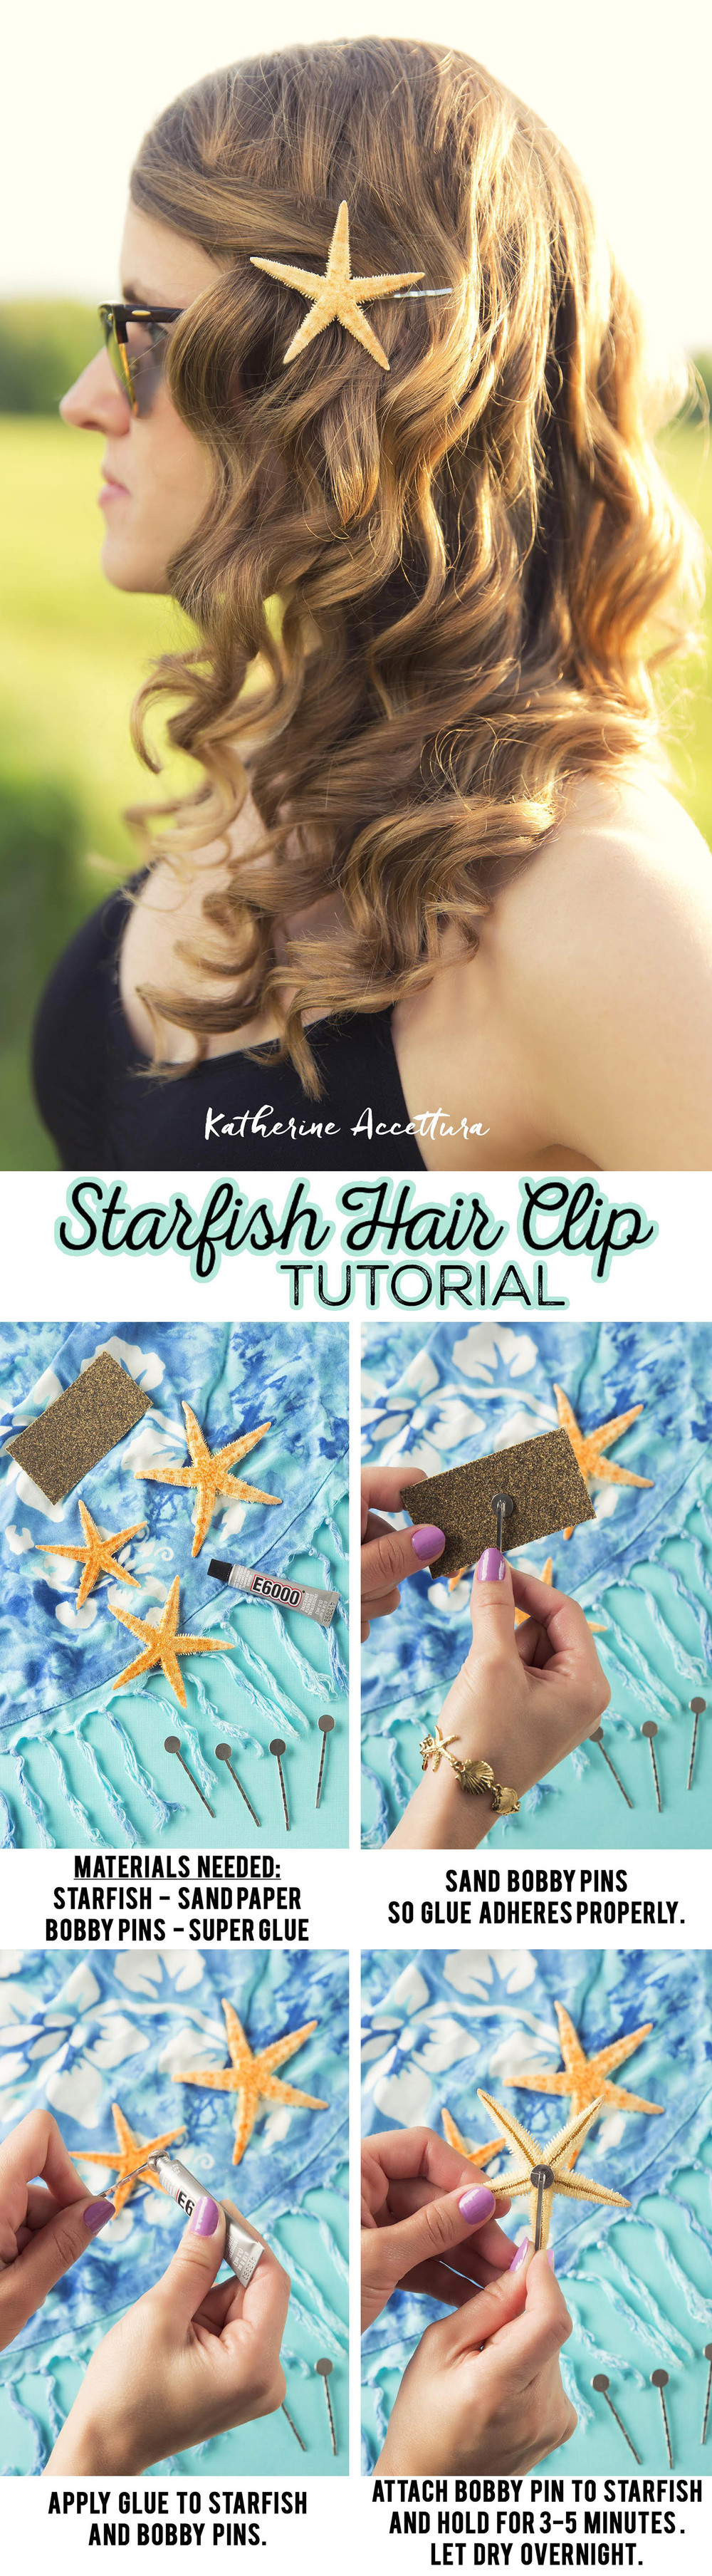 Starfish Bobby Pins - Tutorial